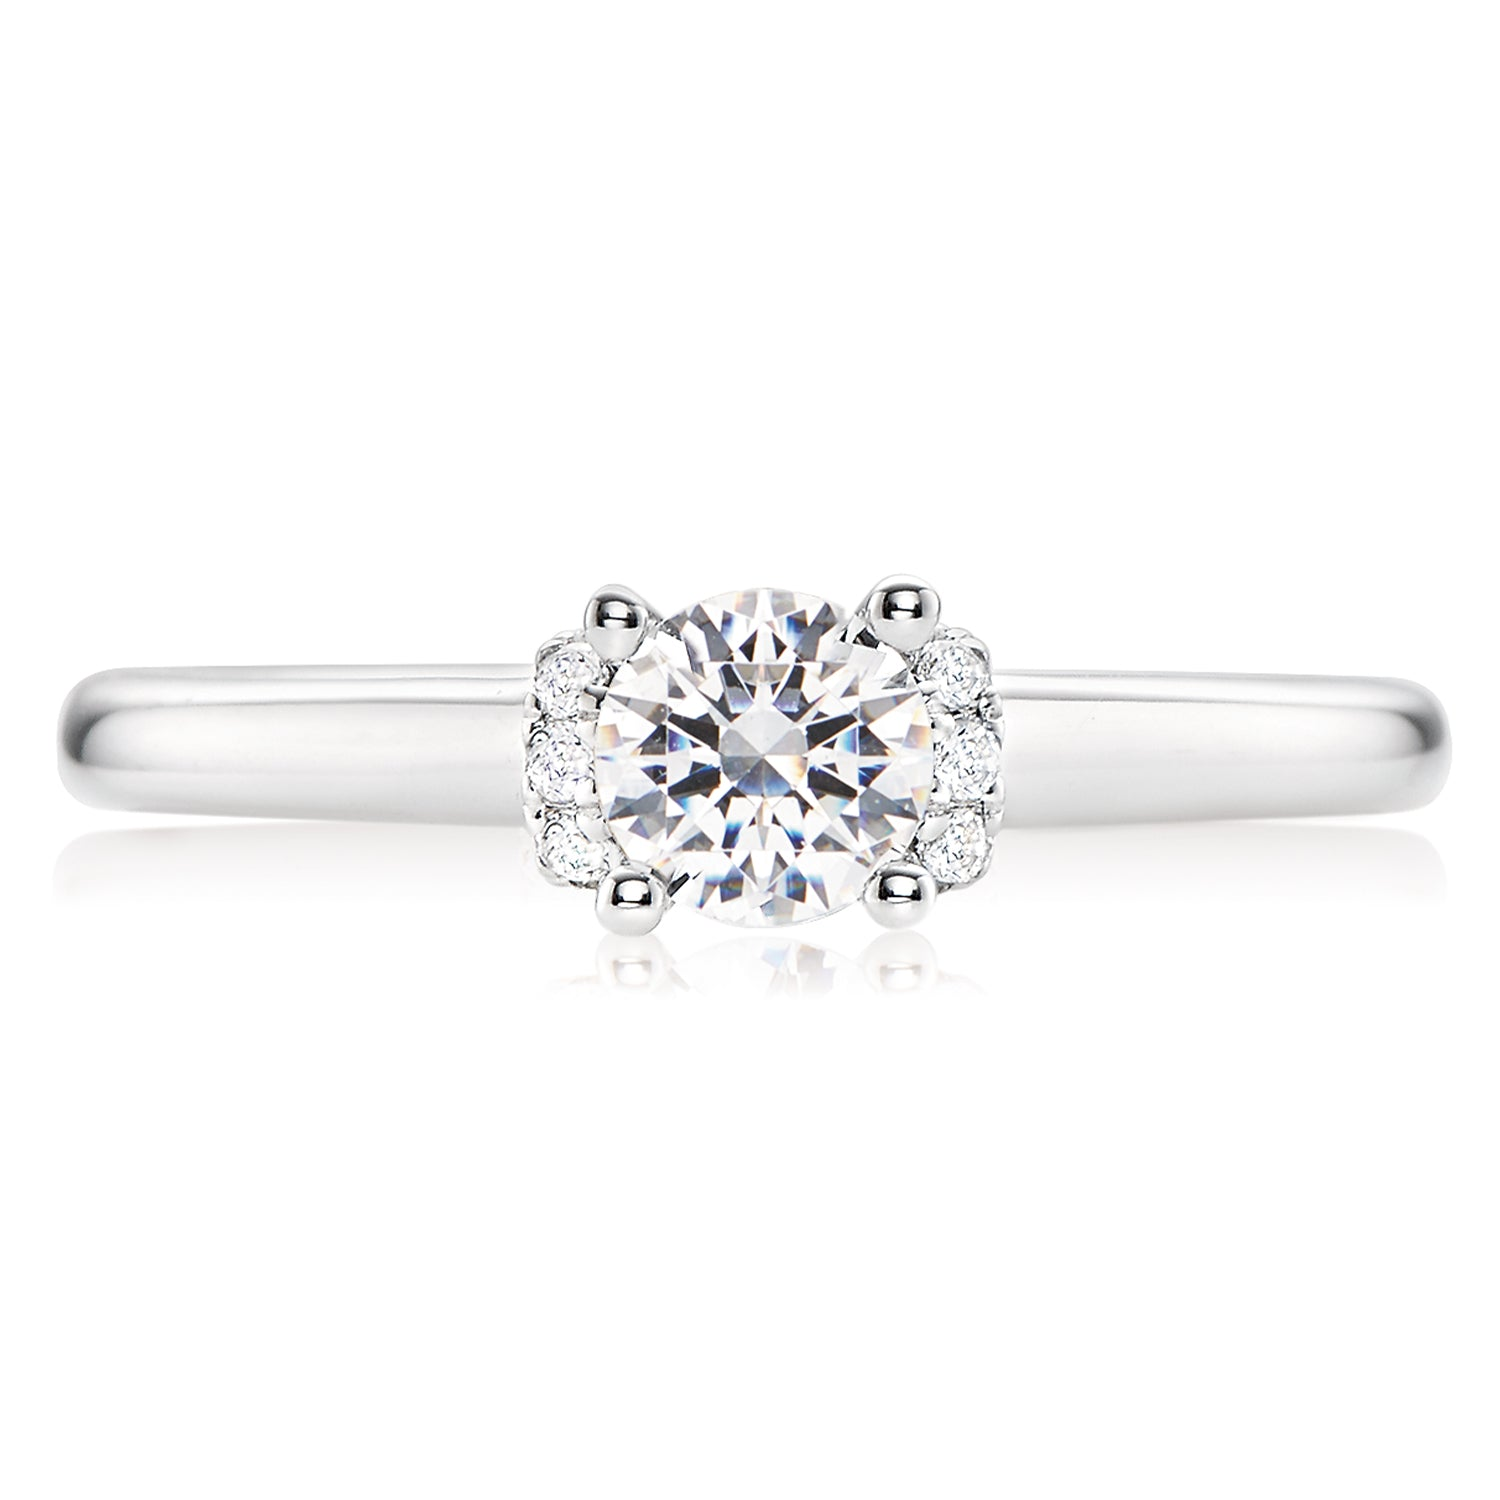 Vera Wang Love 18ct White Gold Round Brilliant Cut with 0.55 CARAT tw of Diamonds